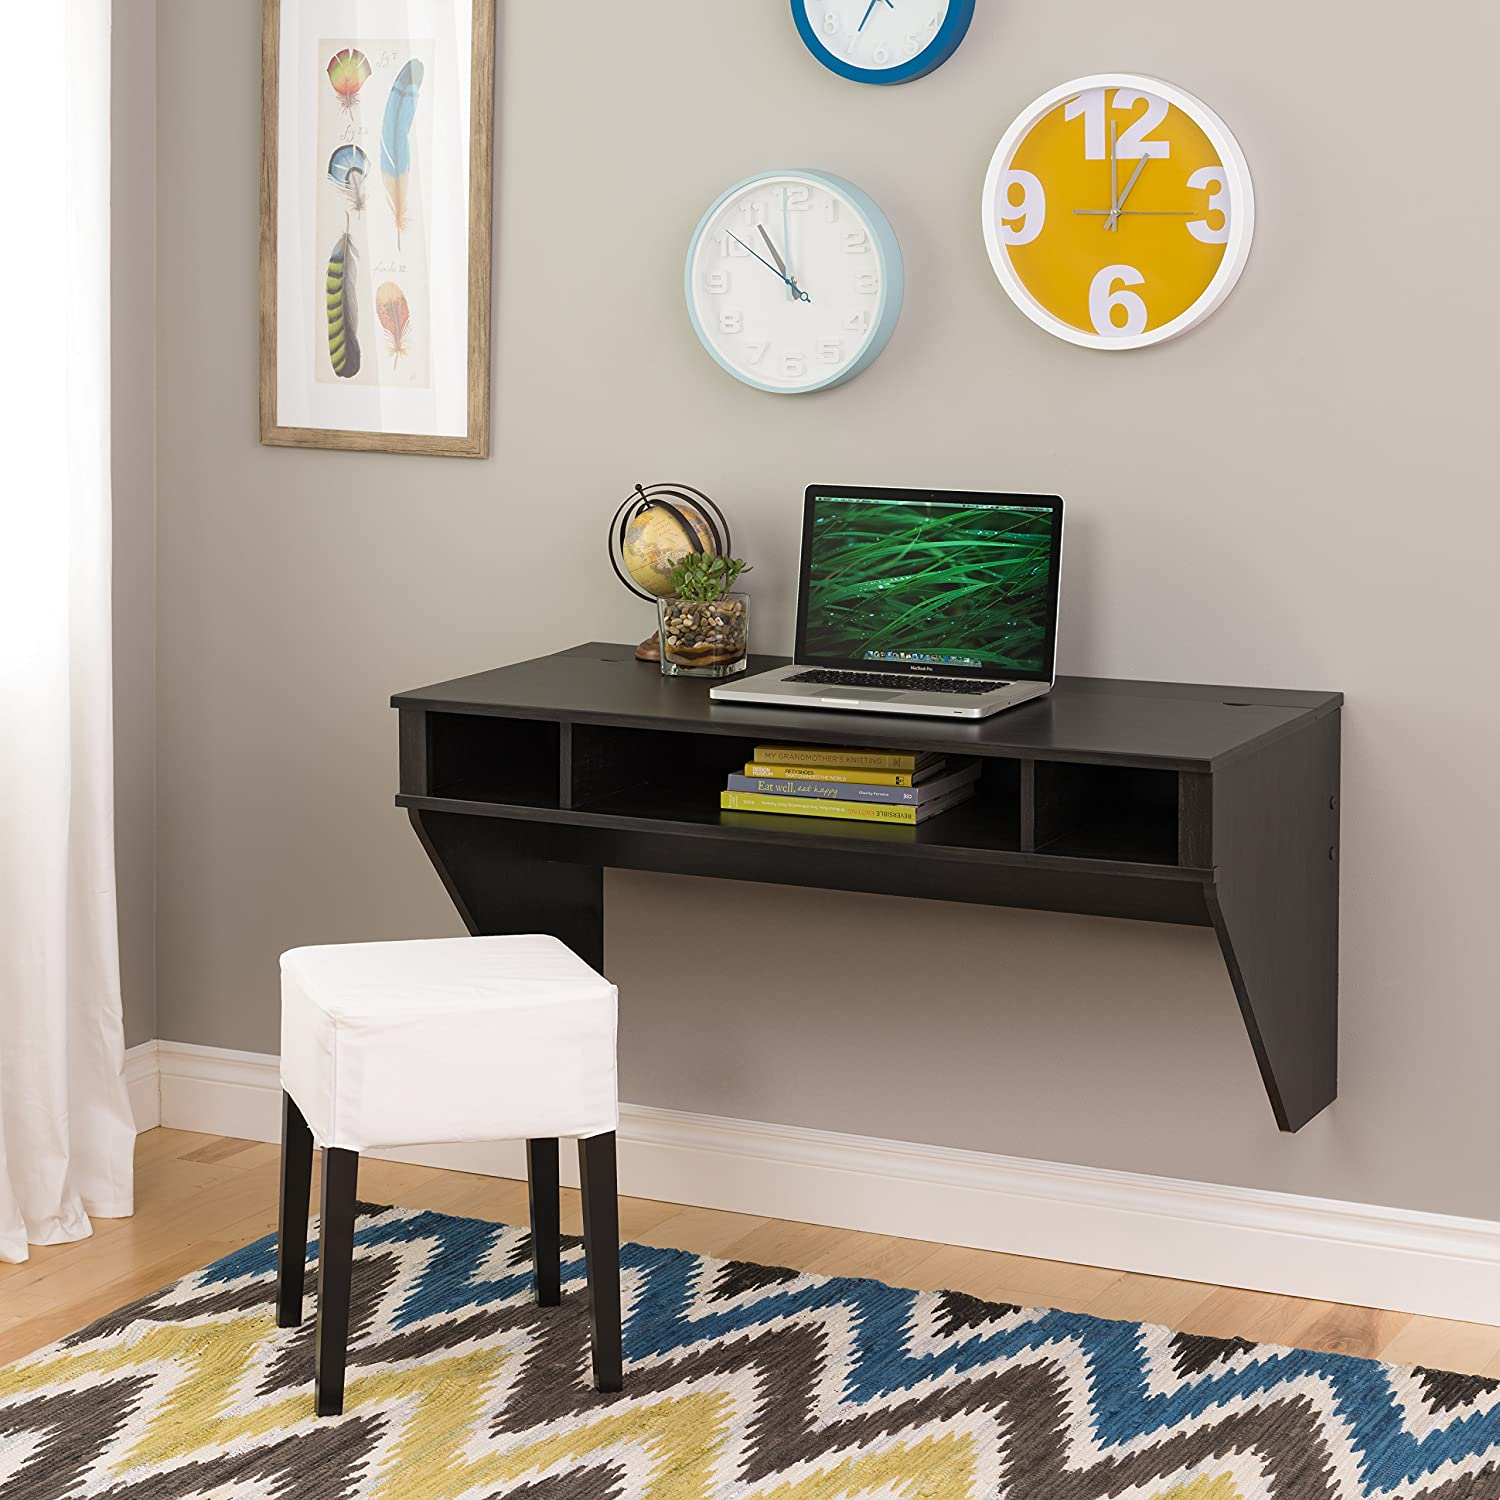 Amazoncom Wall Mounted Designer Floating Desk in Washed Ebony